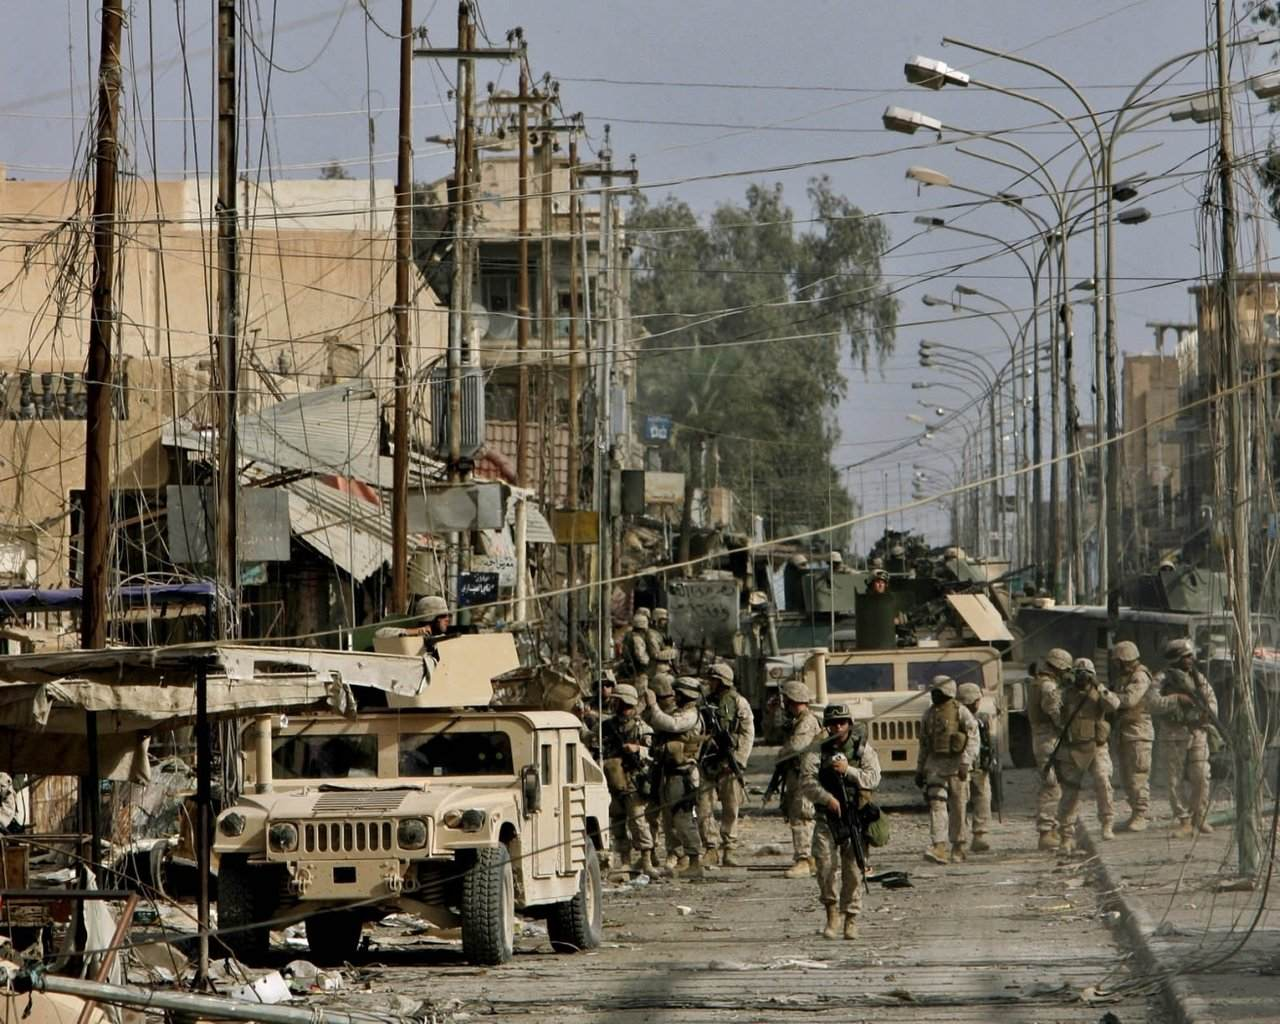 Fallujah 2004 - Operation Phantom Fury, another perception shift in relations to the deployment of small units in MOUT settings in a non conventional warfare